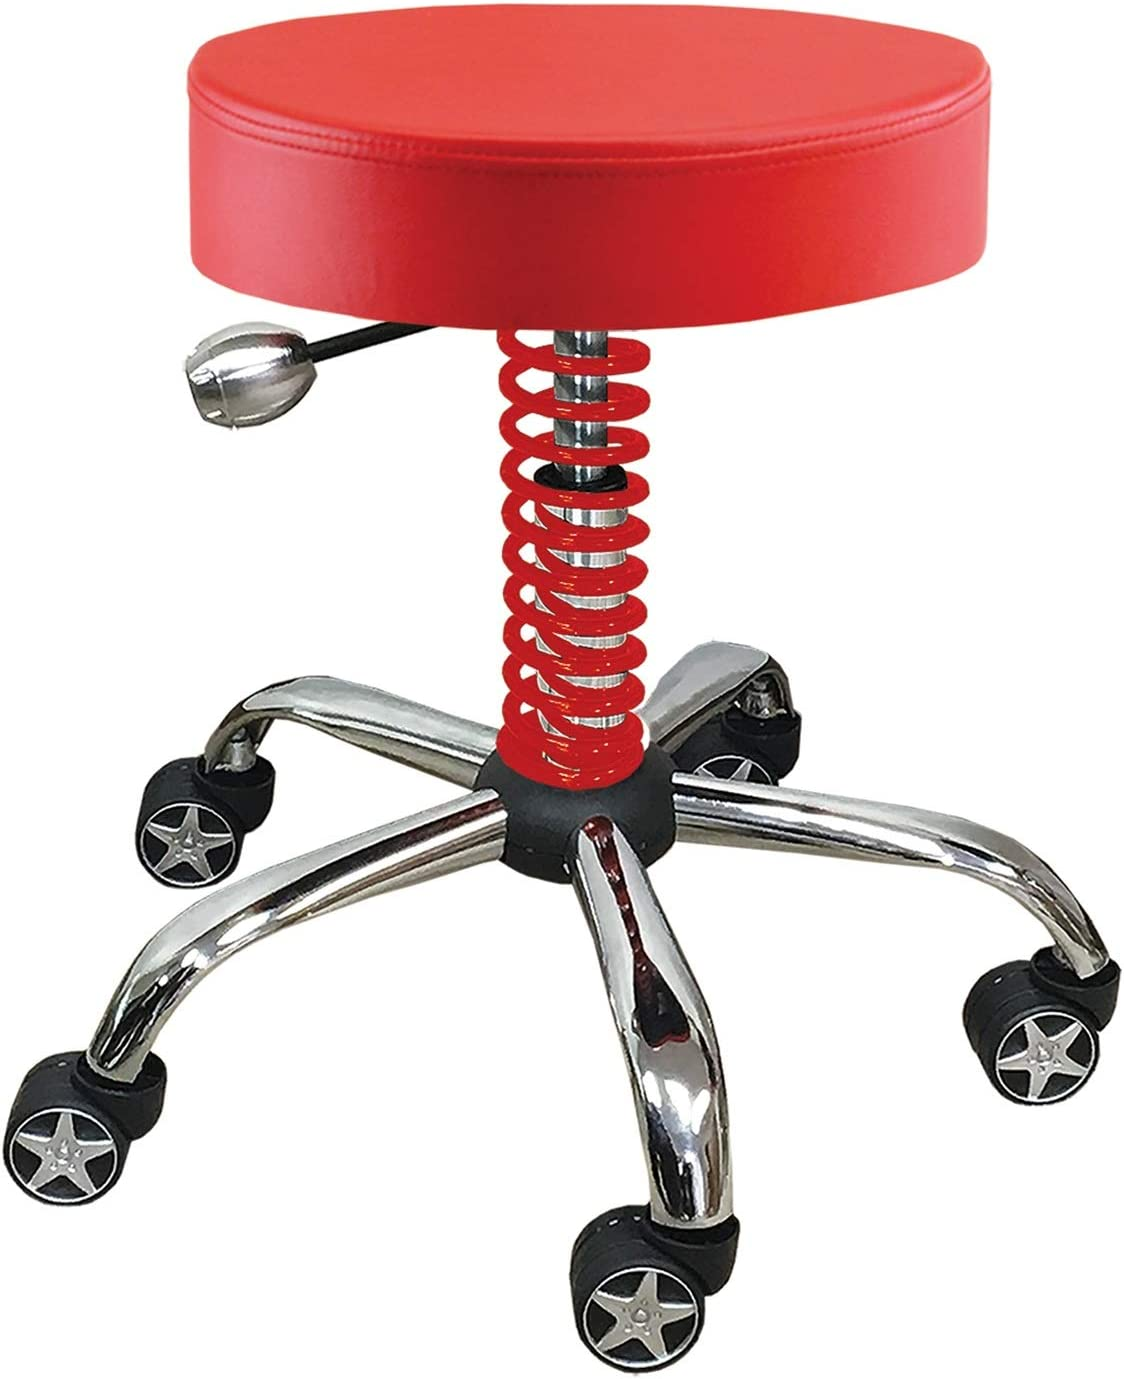 PITSTOP RGS3500R Red Rolling Garage Stool